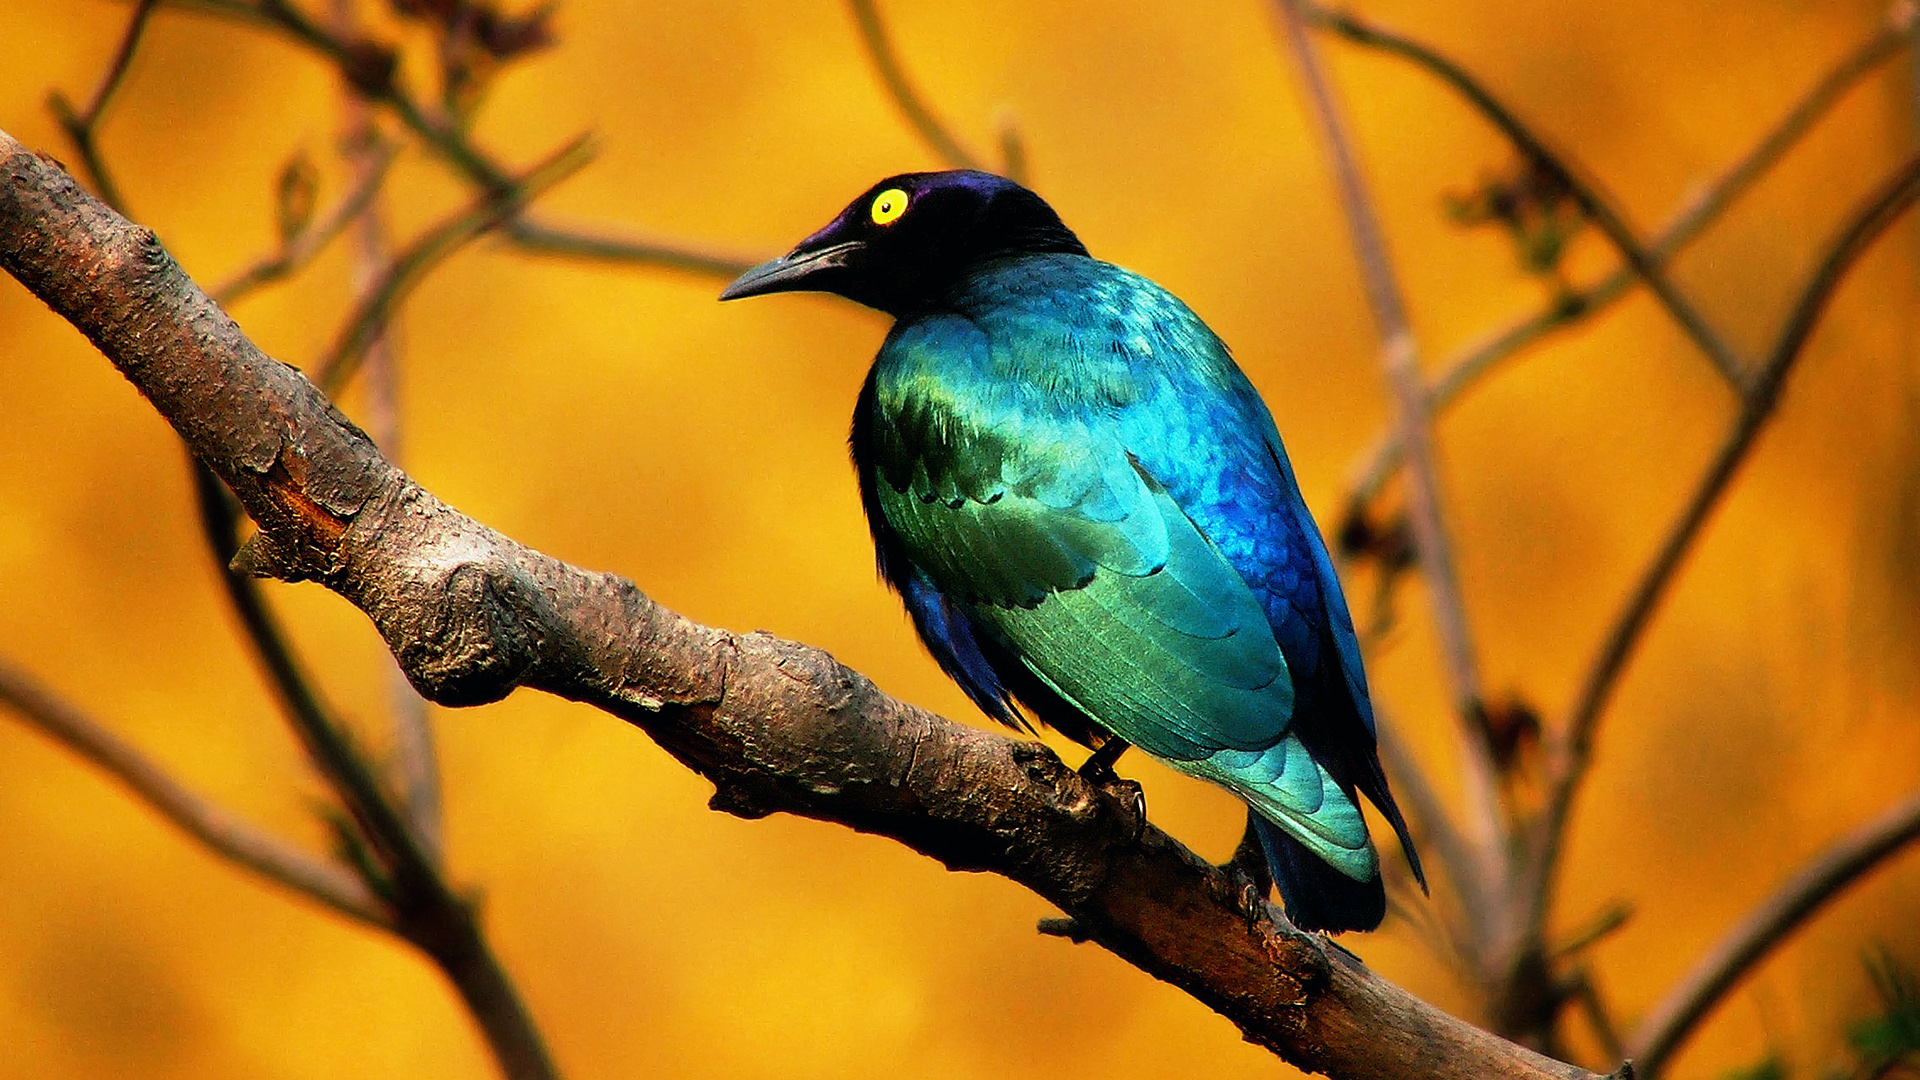 Blue Bird Wallpapers HD Wallpapers 1920x1080